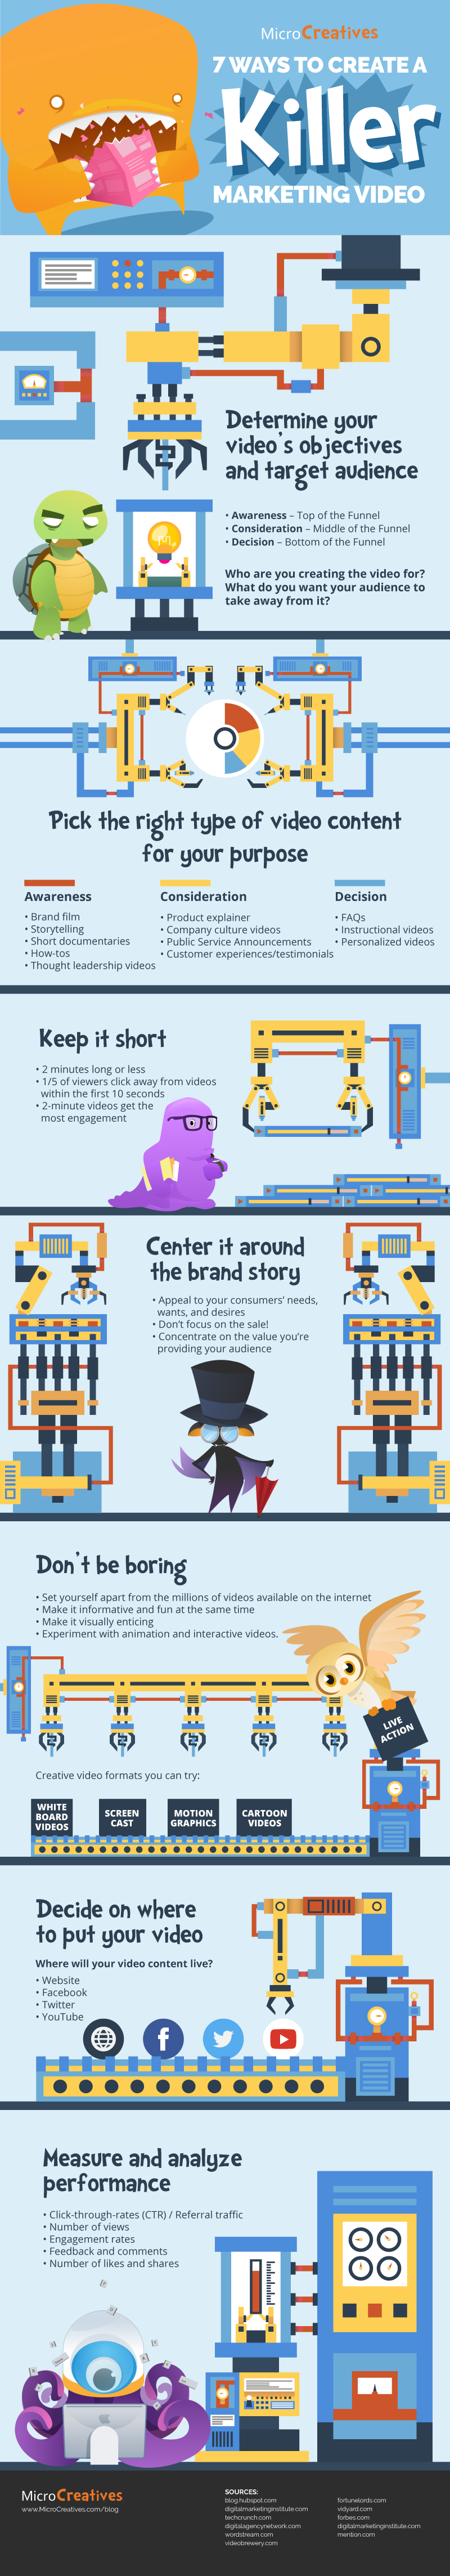 7 Ways to Create a Killer Marketing Video - #Infographic